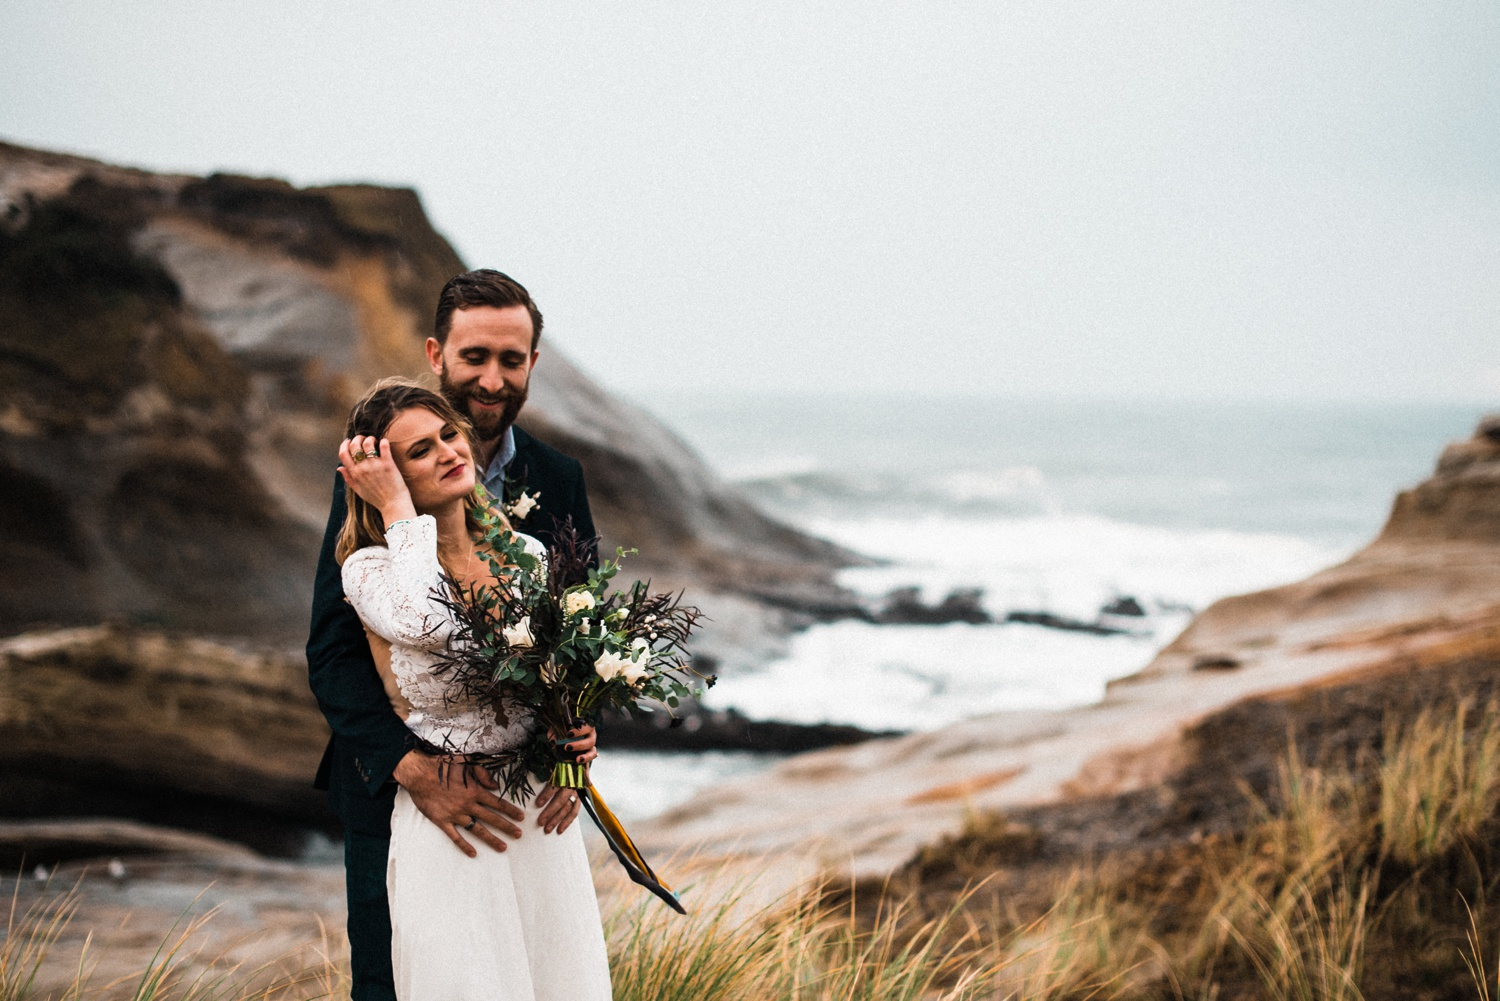 Oregon_Coast_Elopement_Wedding_The_Foxes_Photography_124.jpg